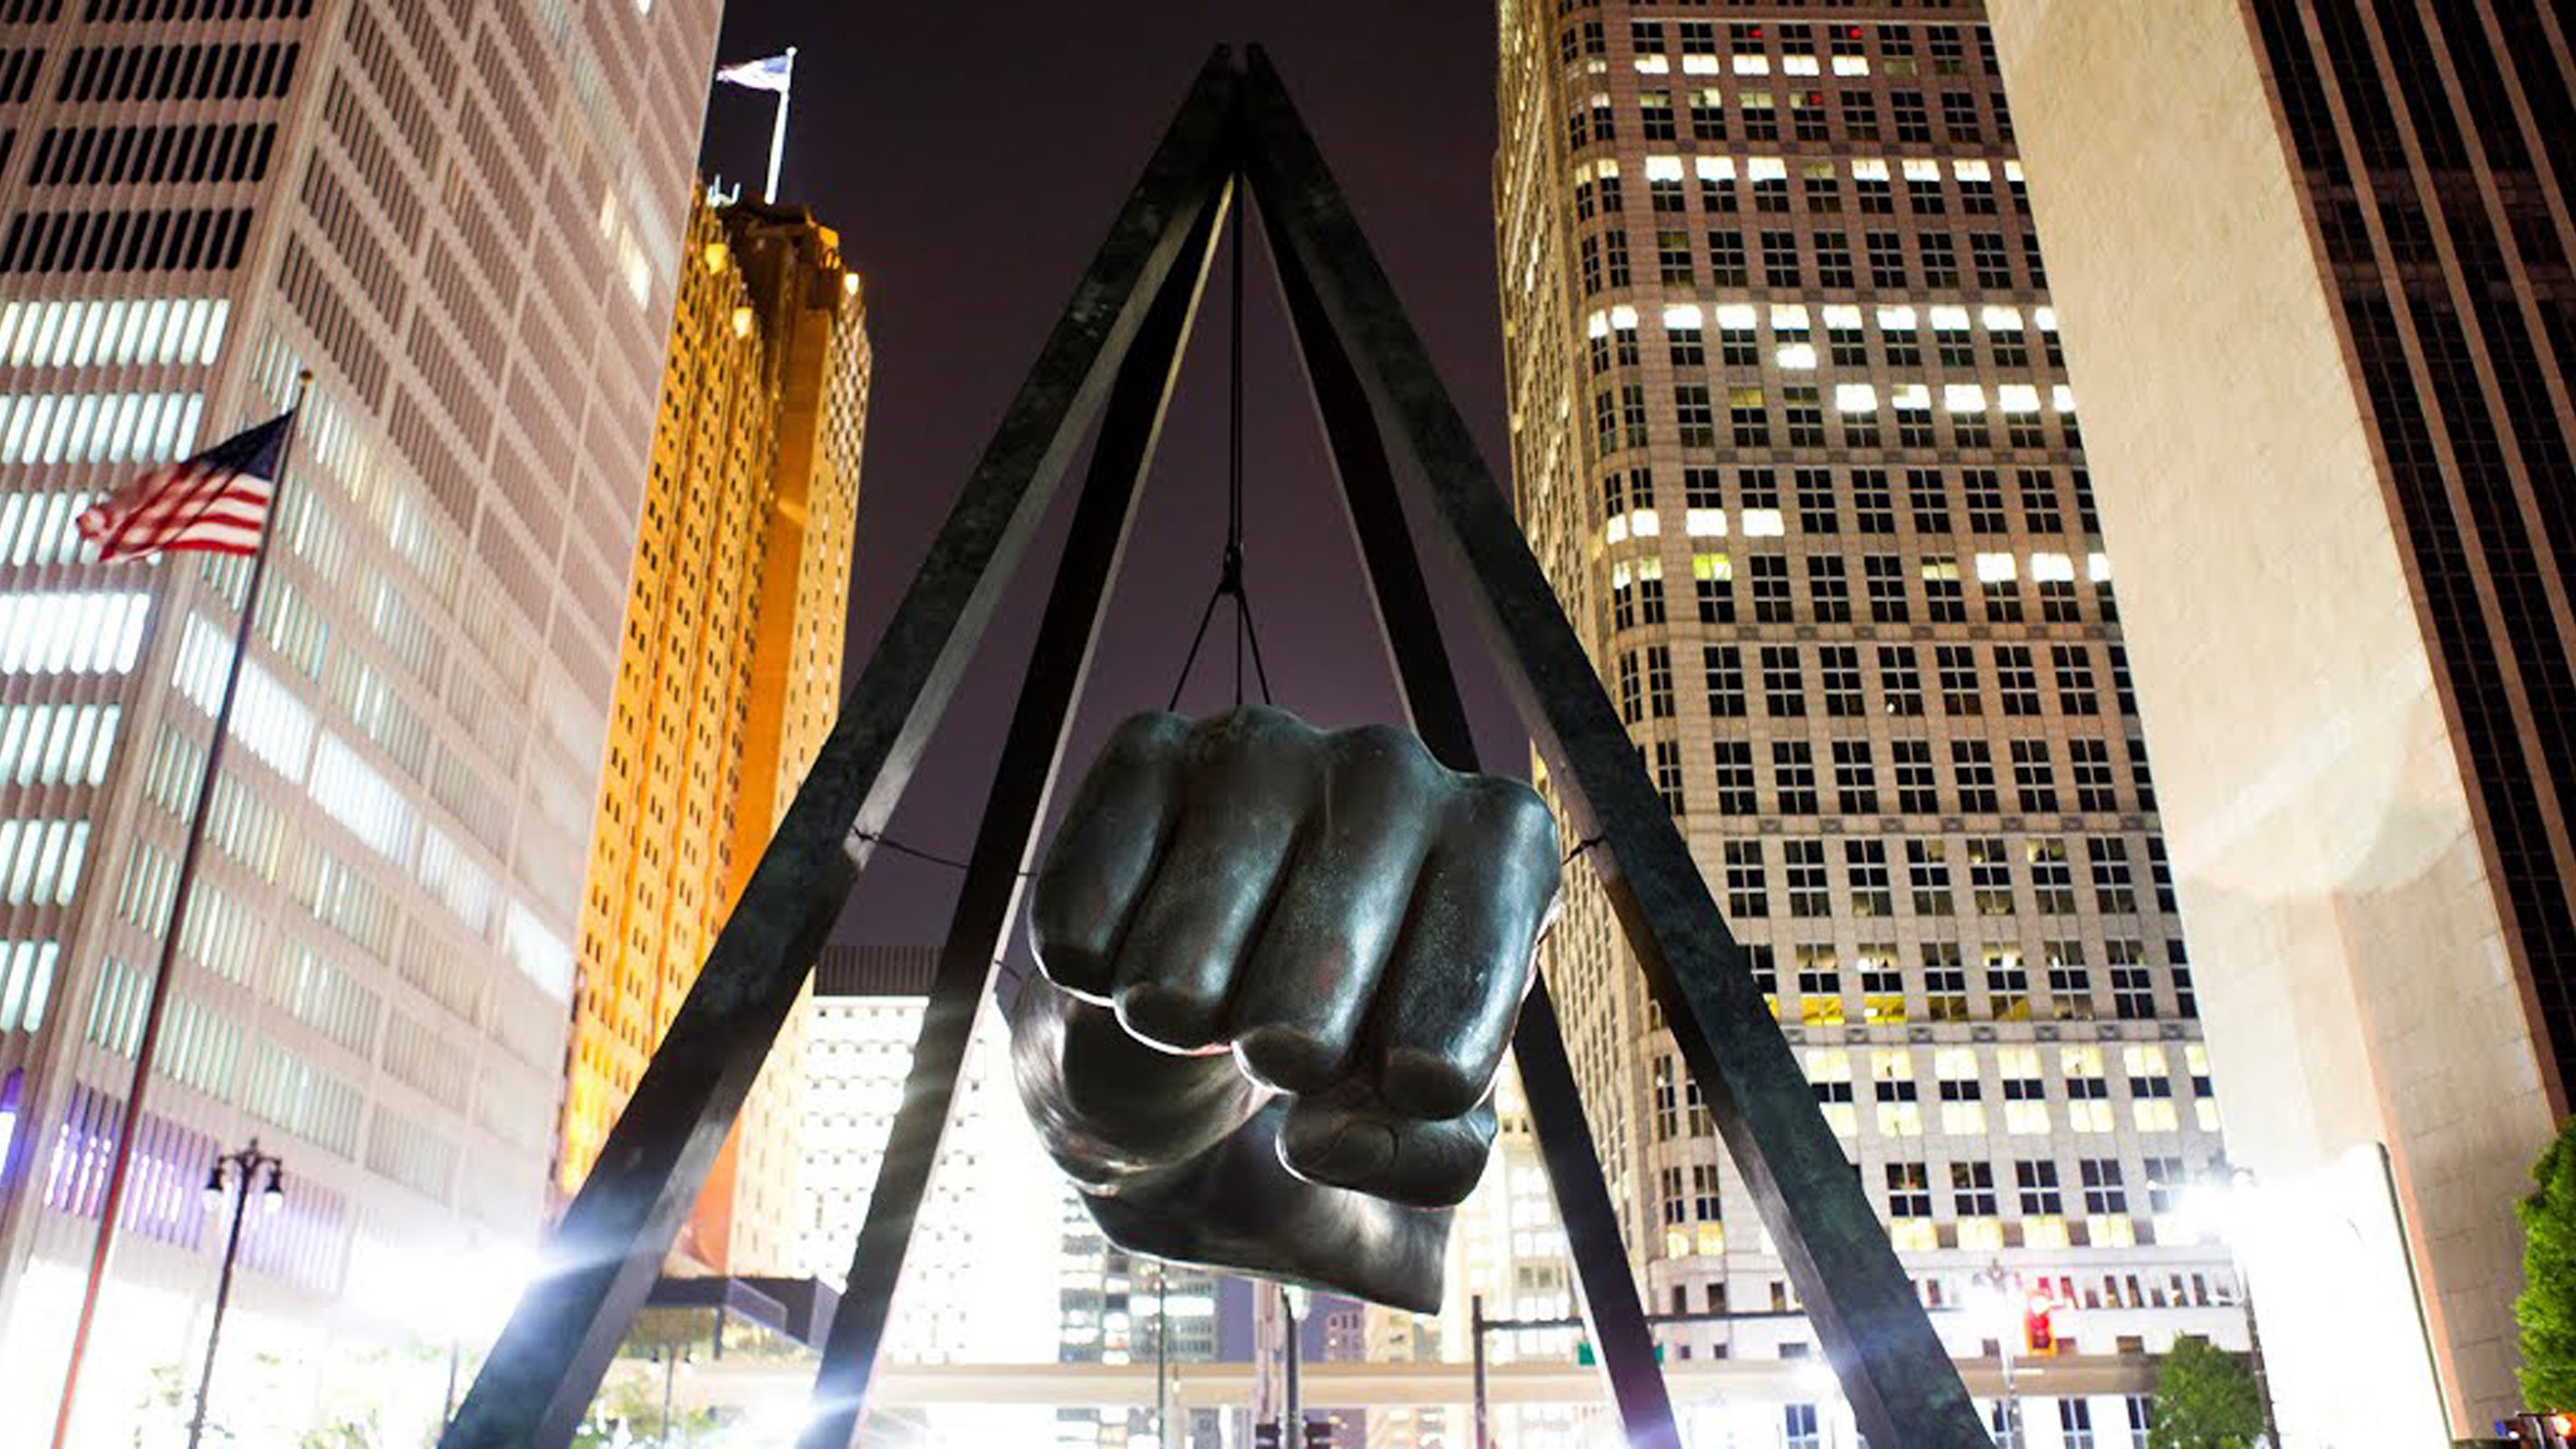 Monument to Joe Louis, AKA The Fist, in Detroit